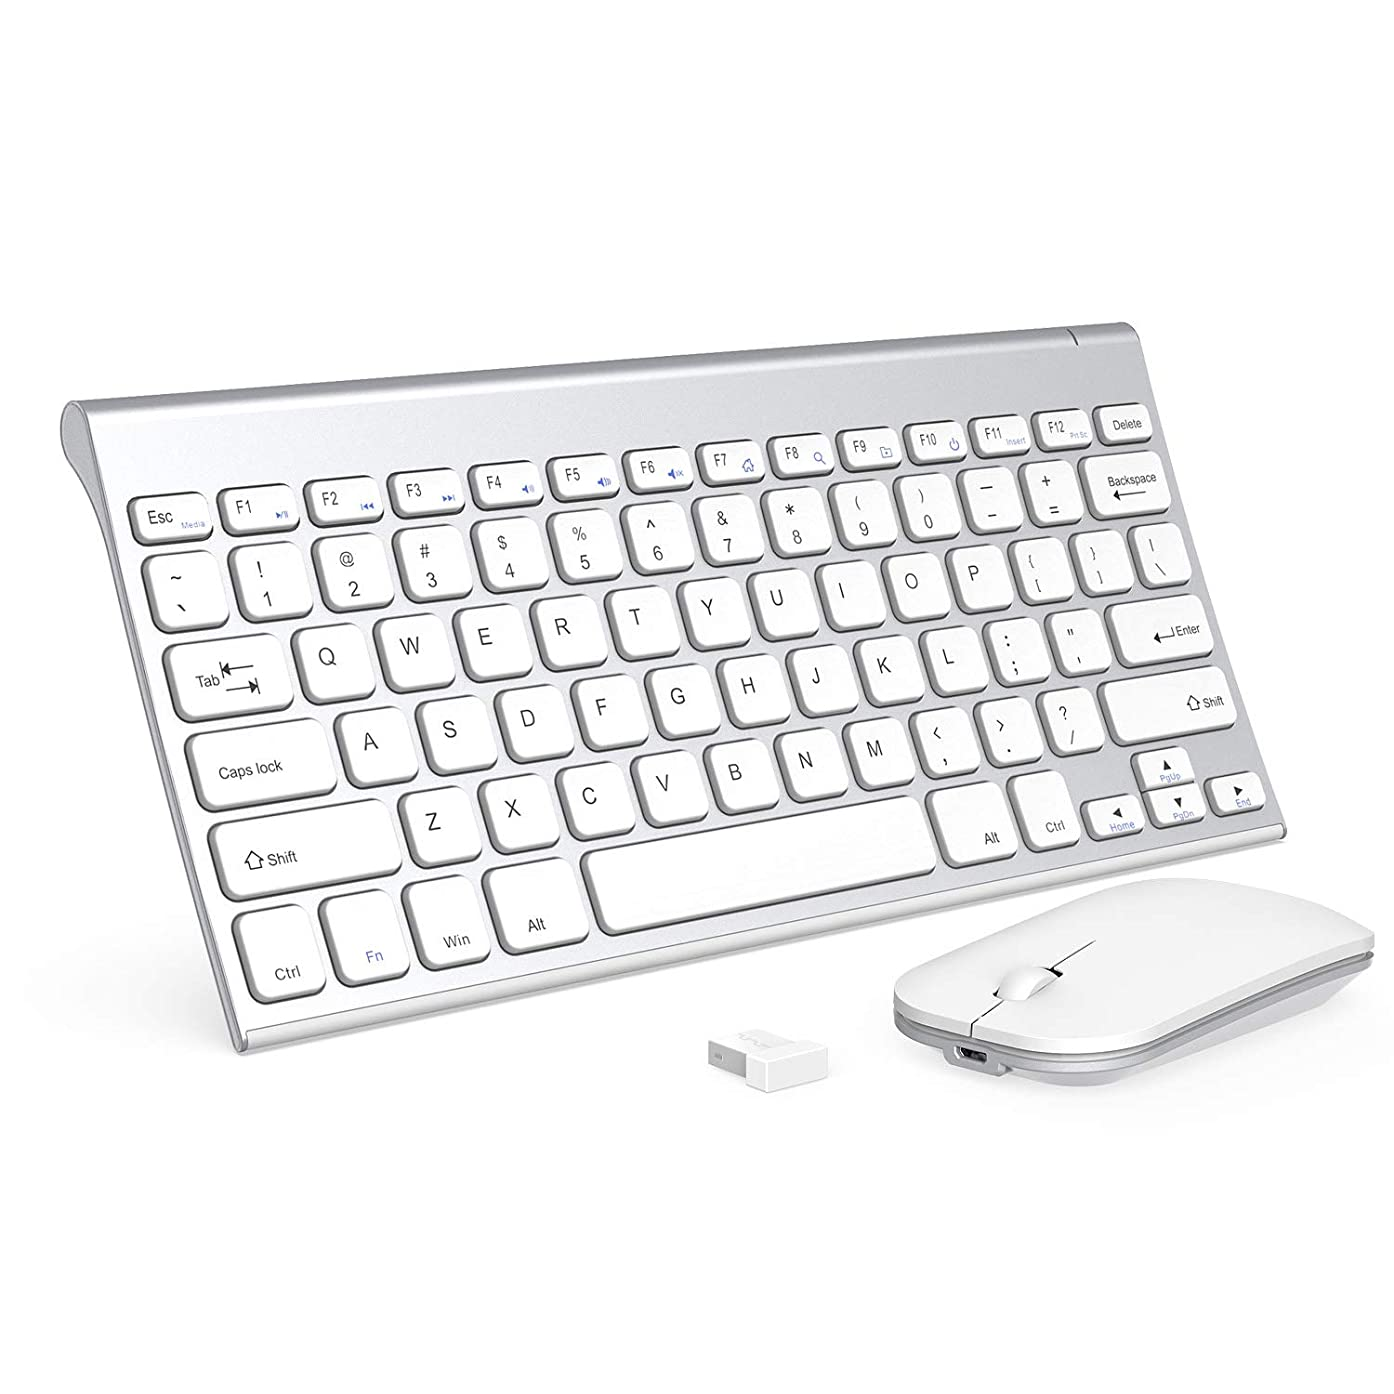 Wireless Keyboard and Mouse Combo, Seenda Ultra Small Compact Rechargeable Wireless Keyboard with Long Battery Life, Silent Mouse Clicking for PC Laptop Computer Windows-Silver and White